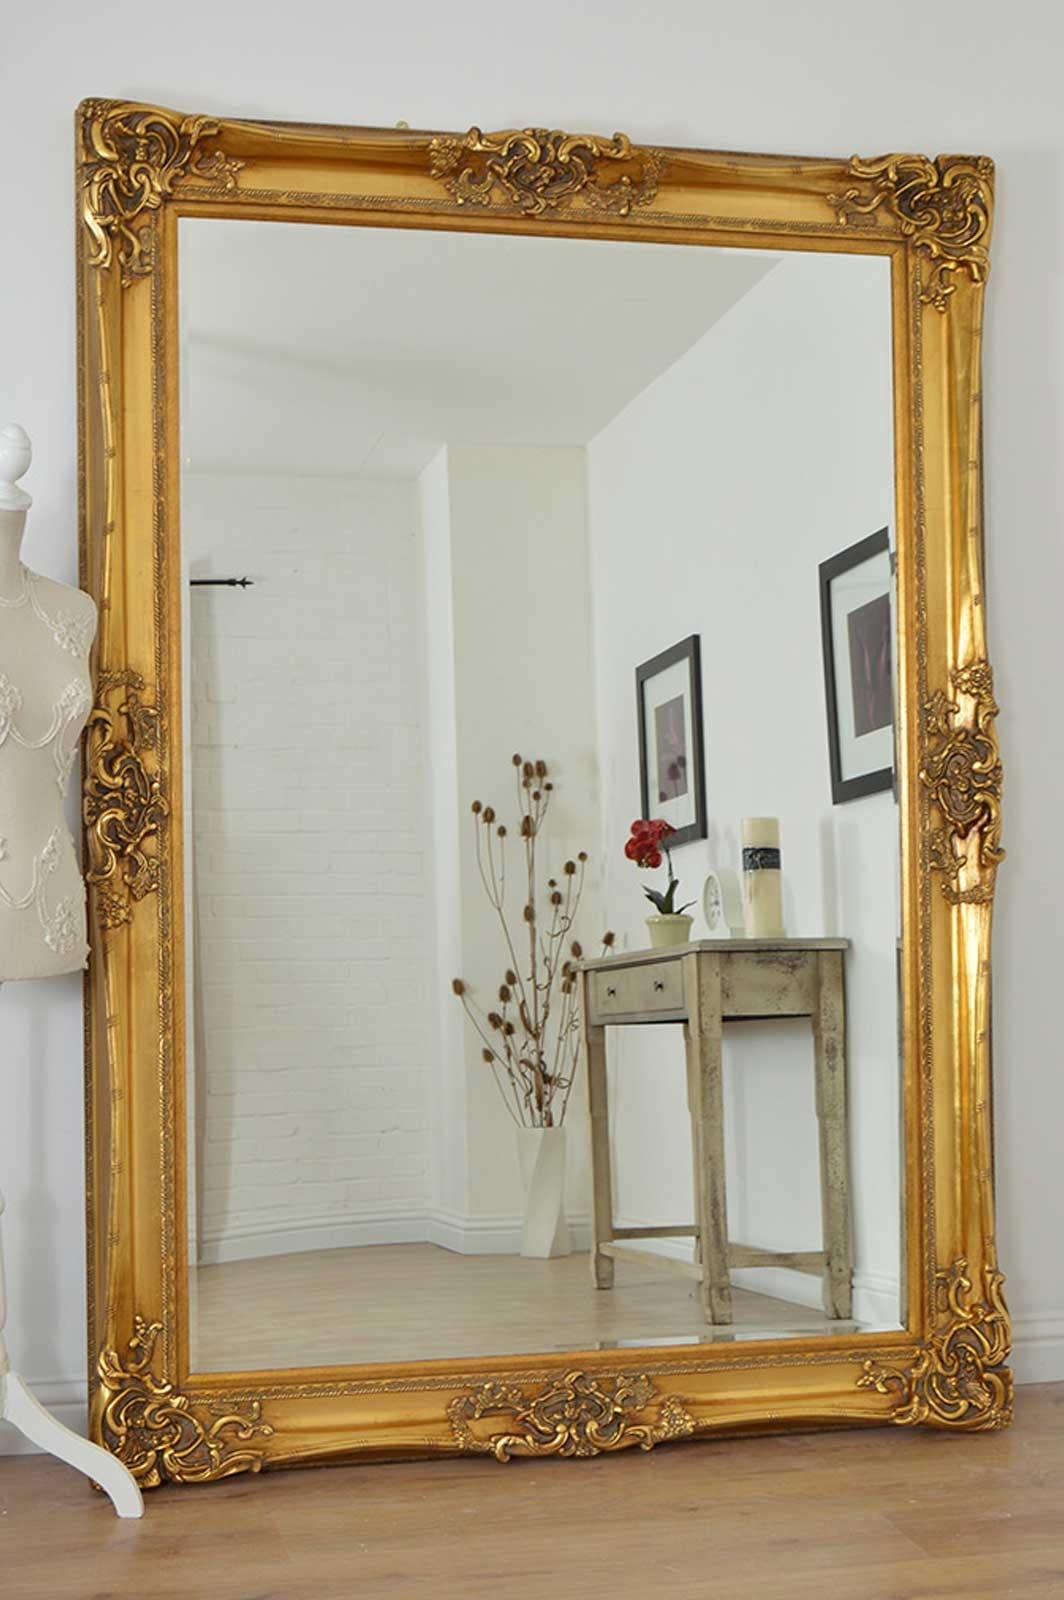 Large Gold Very Ornate Antique Design Wall Mirror 7ft X 5ft 213cm Throughout Antique Gold Mirror French (Image 14 of 15)